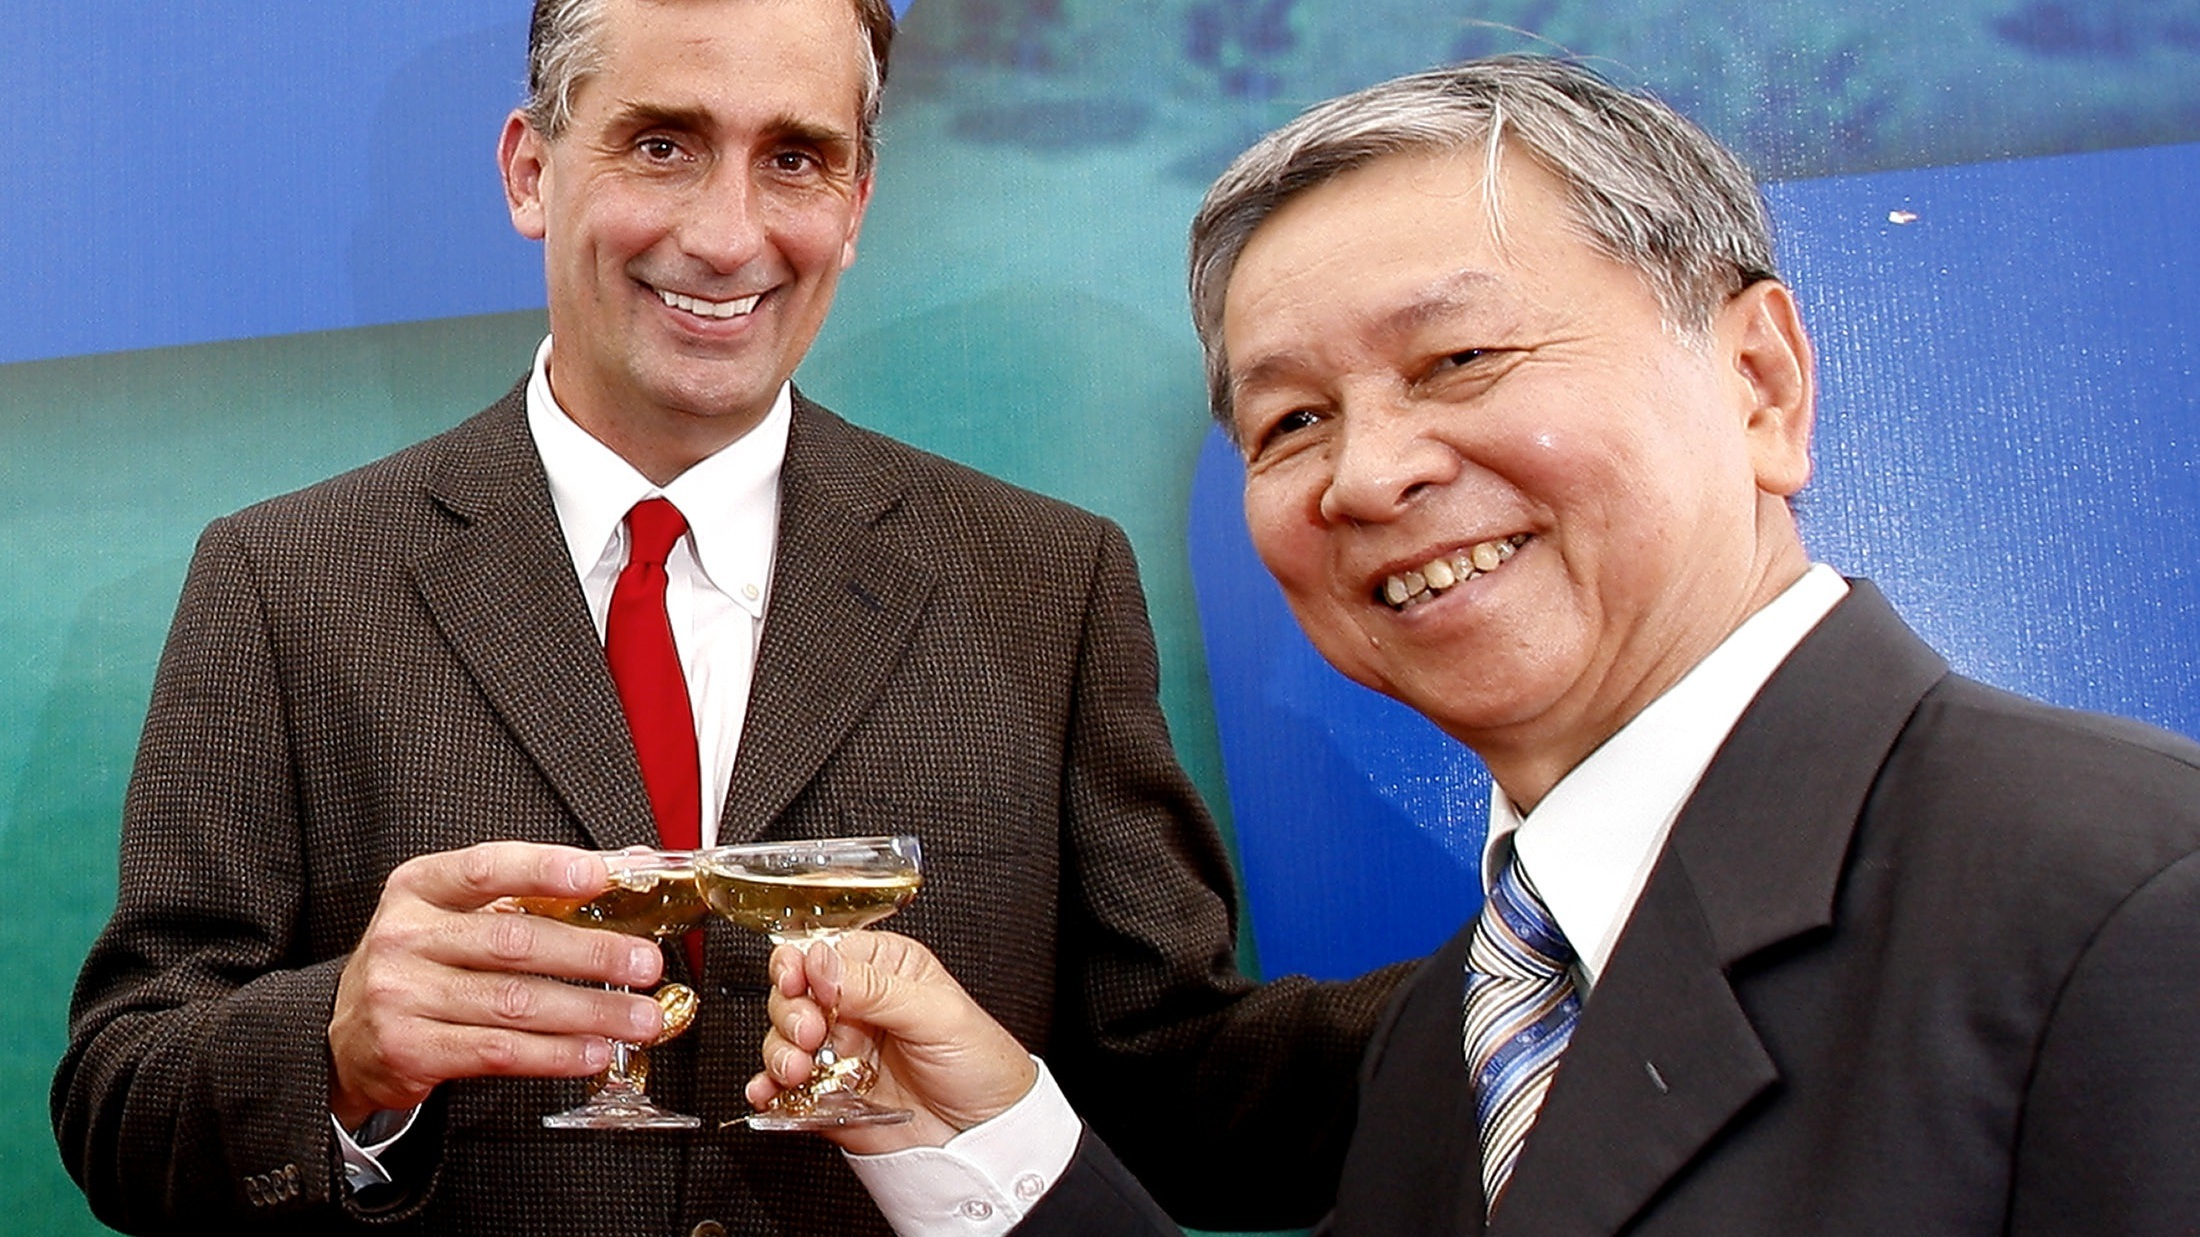 Intel Corp. Vice President and General Manager of Assembly and Test Brian Krzanich, left, and  former Chairmain of Saigon High Tech Park Pham Chanh Truc clink their glasses at the start of Construction Ceremony of the Assembly and Test Facility of Intel's chipset products at Saigon High Tech Park in Ho Chi Minh city, South Vietnam, on Wednesday, March 28, 2007. This construction with the 500,000 square foot (46,451 square meter) facility in South Vietnam, was first announced of Intel's US$1 bilion investment in November 2006. It will take about 18 months with production expected in 2009 and could eventually employ as many as 4,000 people once completed. (AP Photo/Le Quang Nhat)